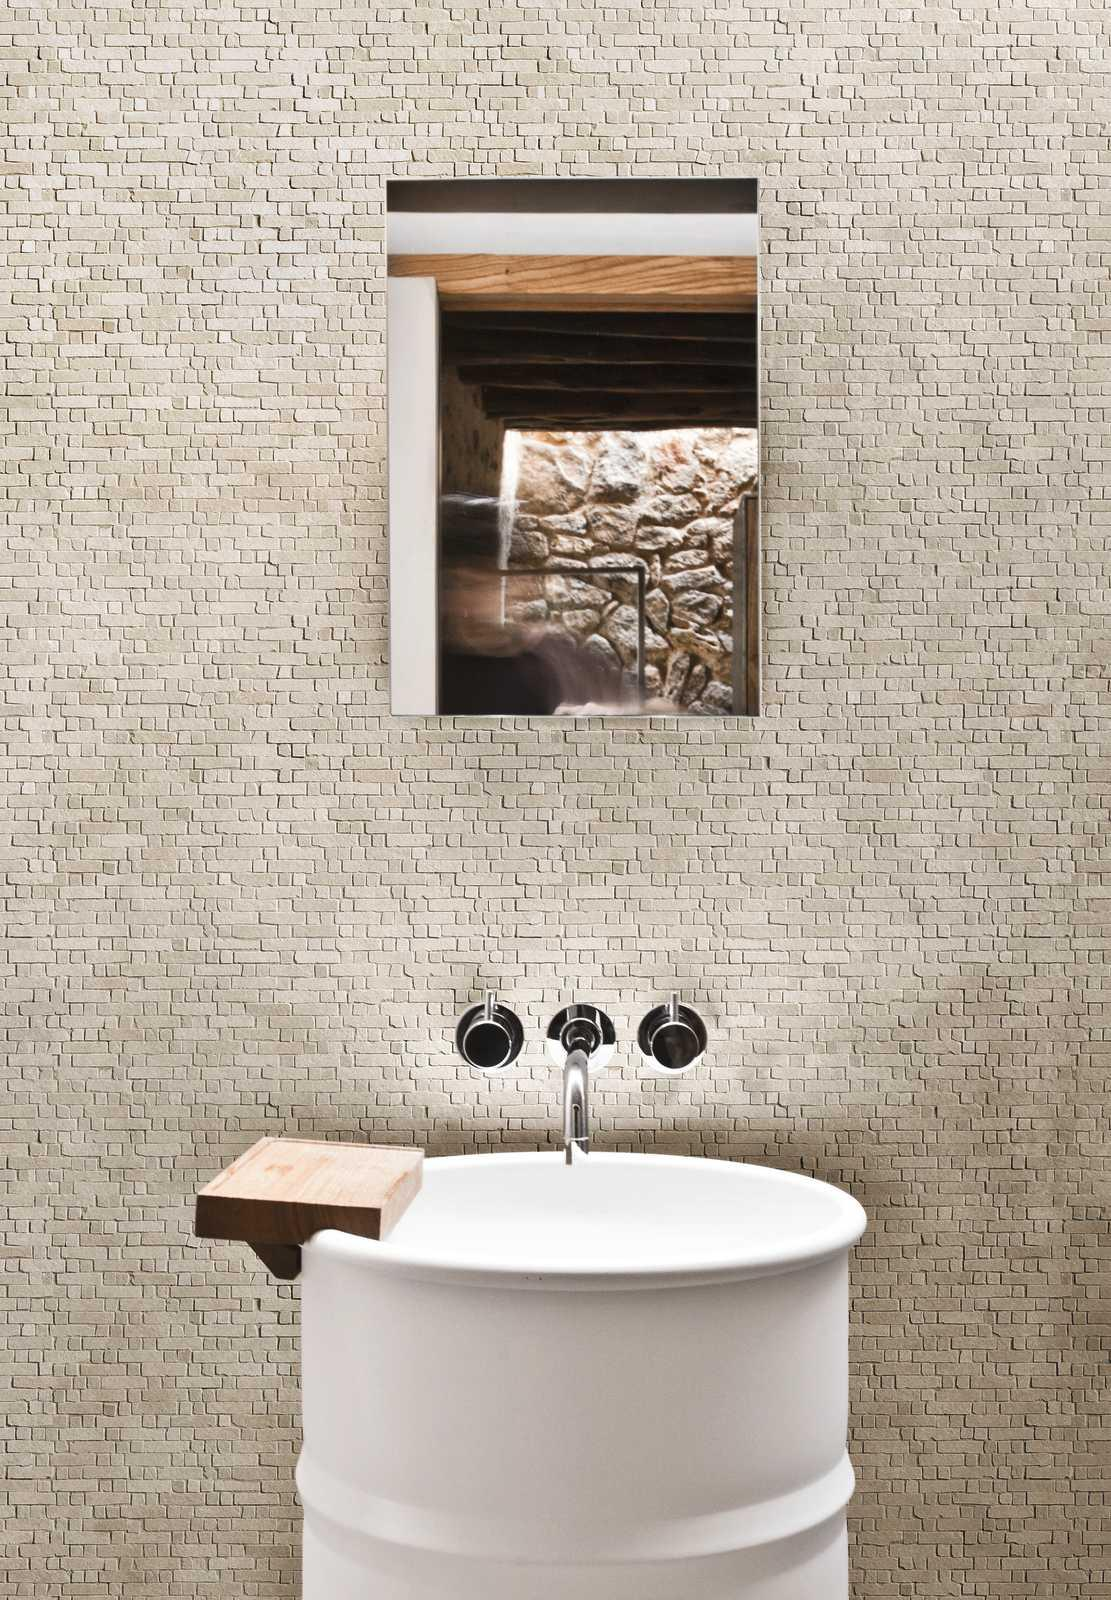 Memento - Concrete Effect - Bathroom